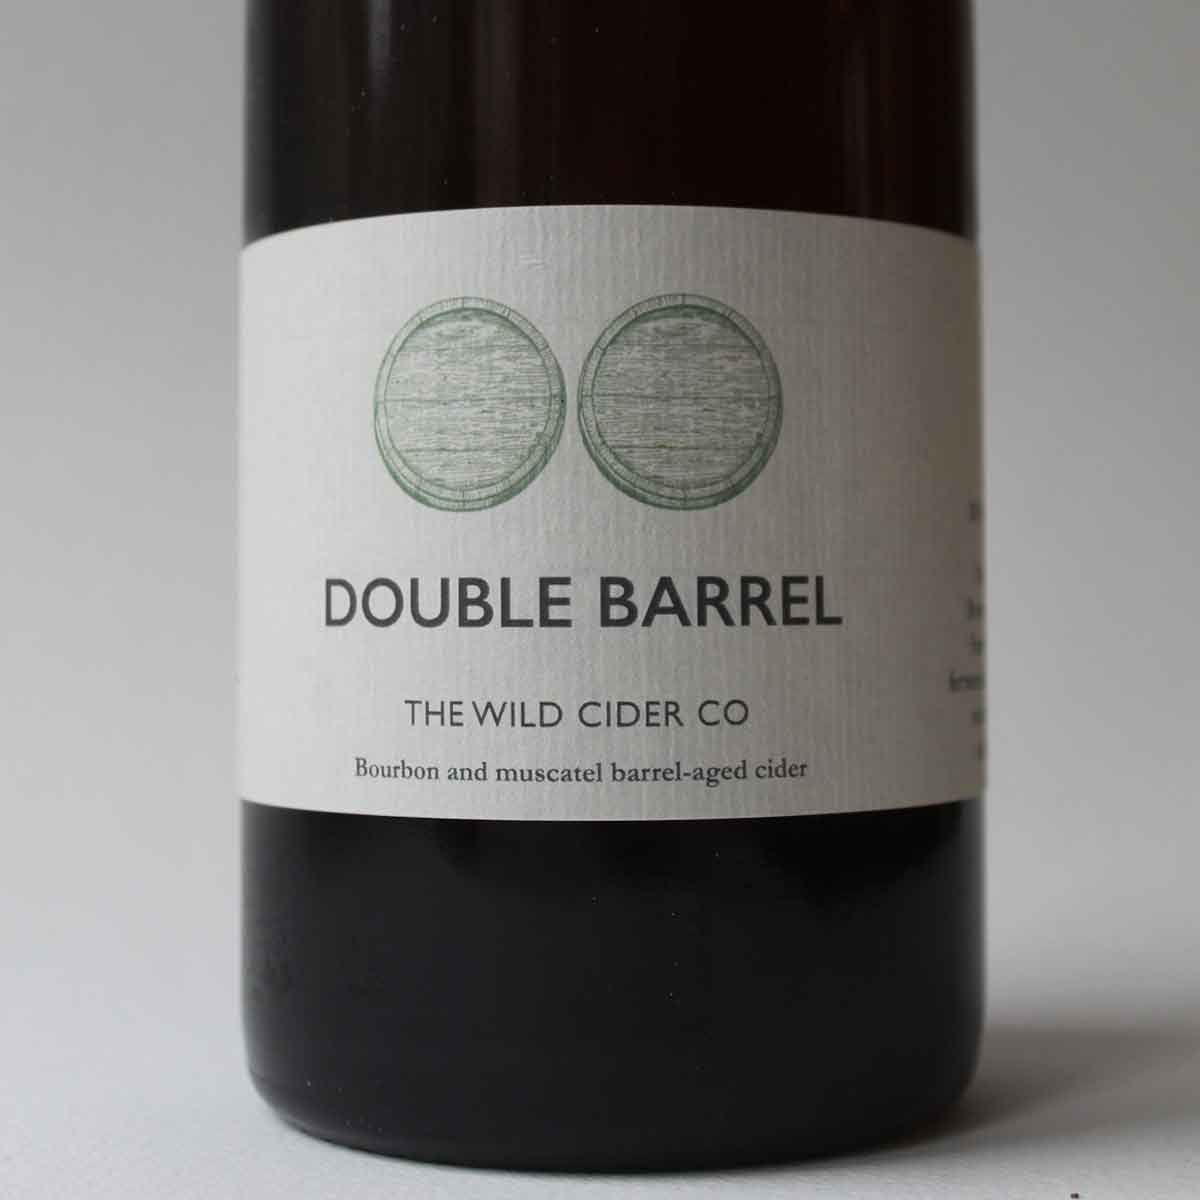 Wild Cider Co Double Barrel 7.0% (750ml)